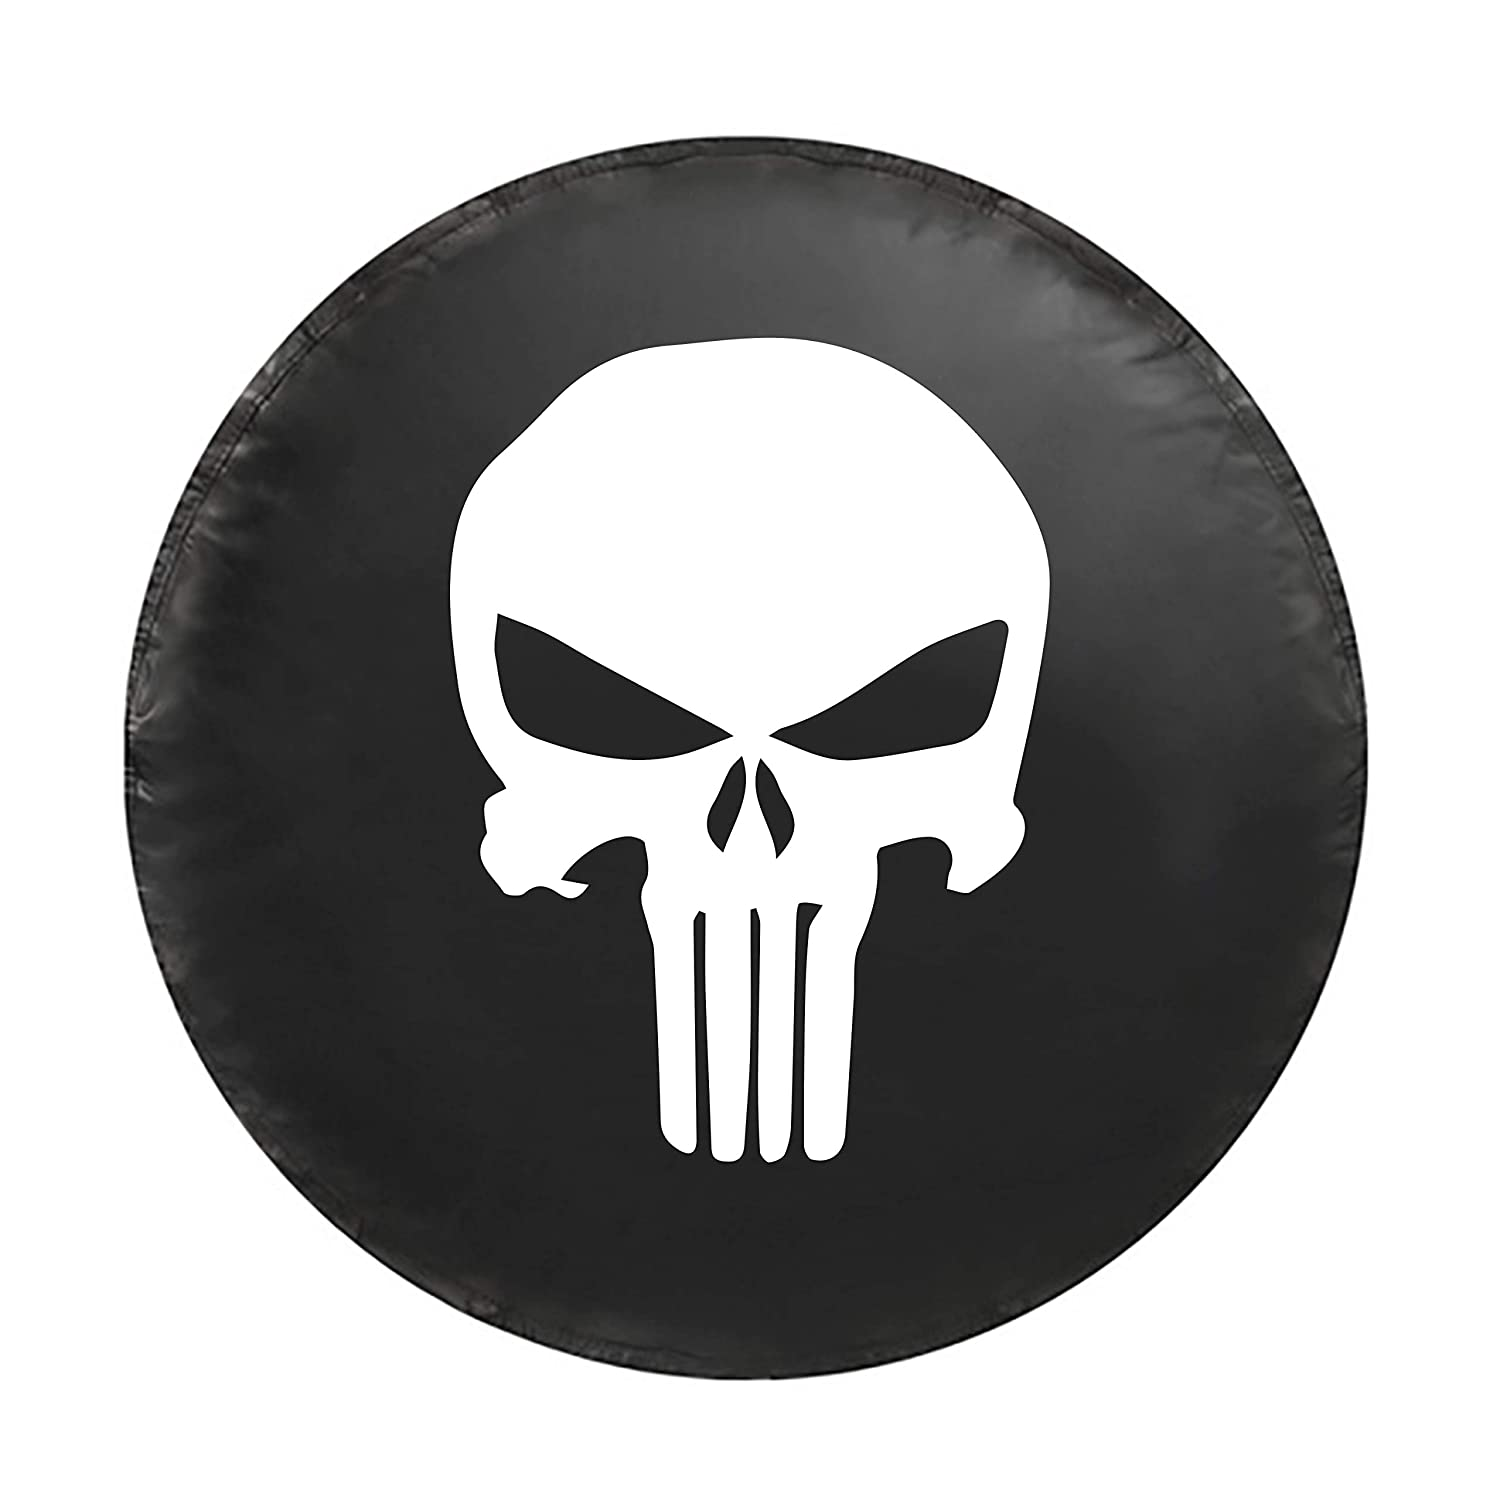 Choose from Multiple Designs with Flag /& Crossbones Boat Trailer , Skull 2 Jeep Wranglers 16 INCH Rugged Weather Resistant Leather Grain Vinyl Kenkesh Skull Spare Tire Cover for RV L